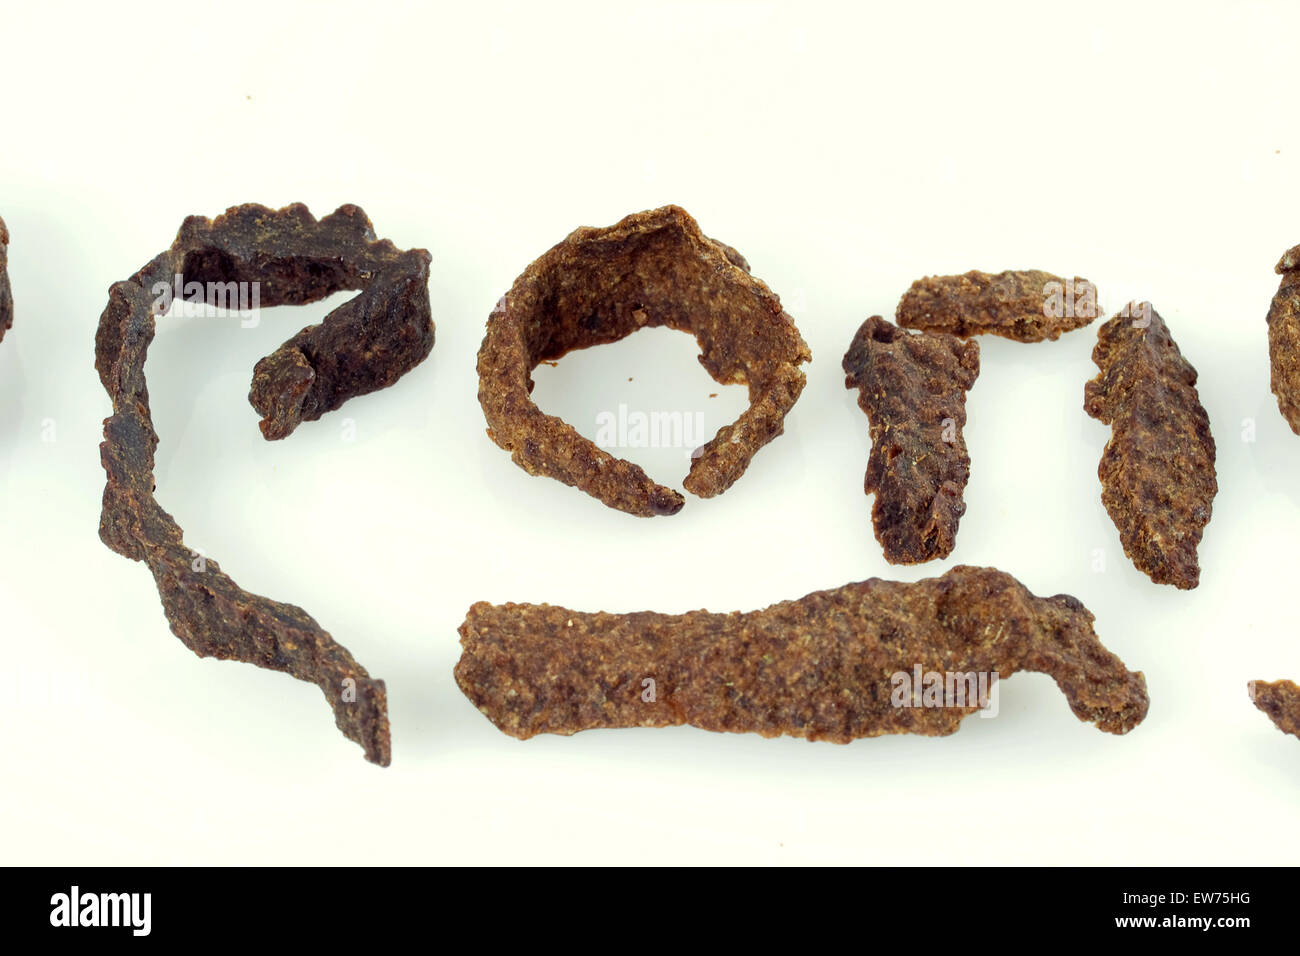 Greek letters ROP (pROPolis) formed by raw fresh, apis honey bee propolis chewing stick bars, macro detail - Stock Image